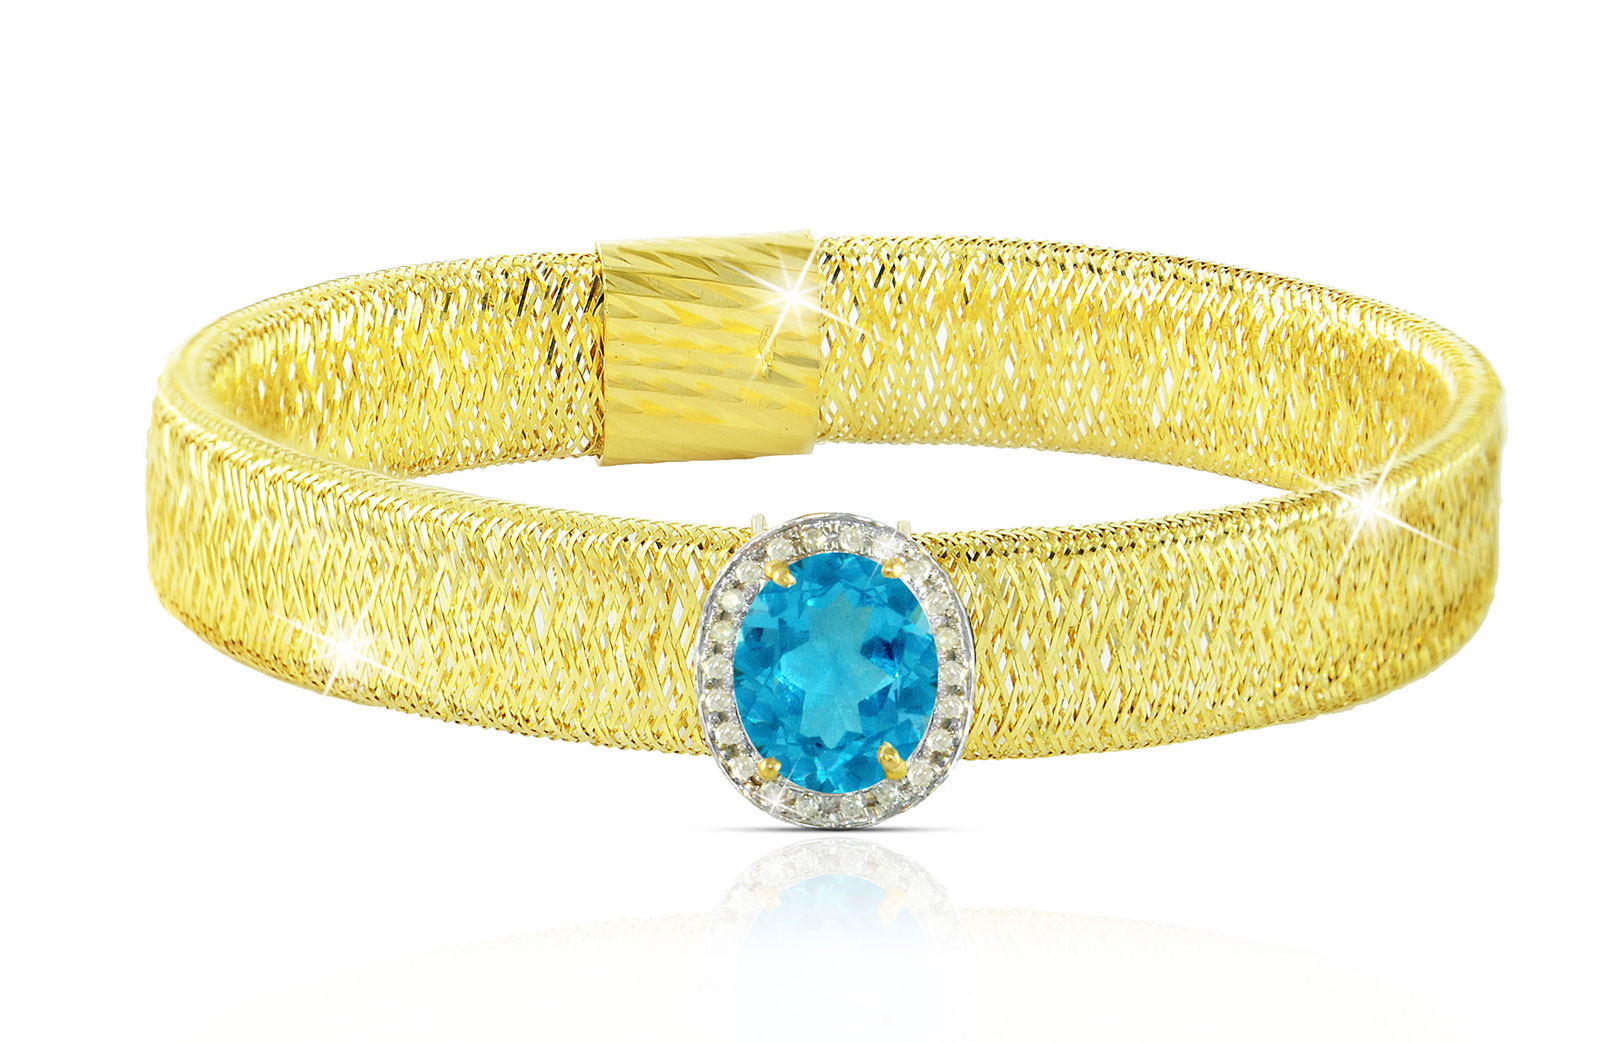 Vera Perla 18k  Gold 10mm Genuine Oval   Cut Swiss Blue Topaz 0.12Ct Genuine Diamonds Bracelet